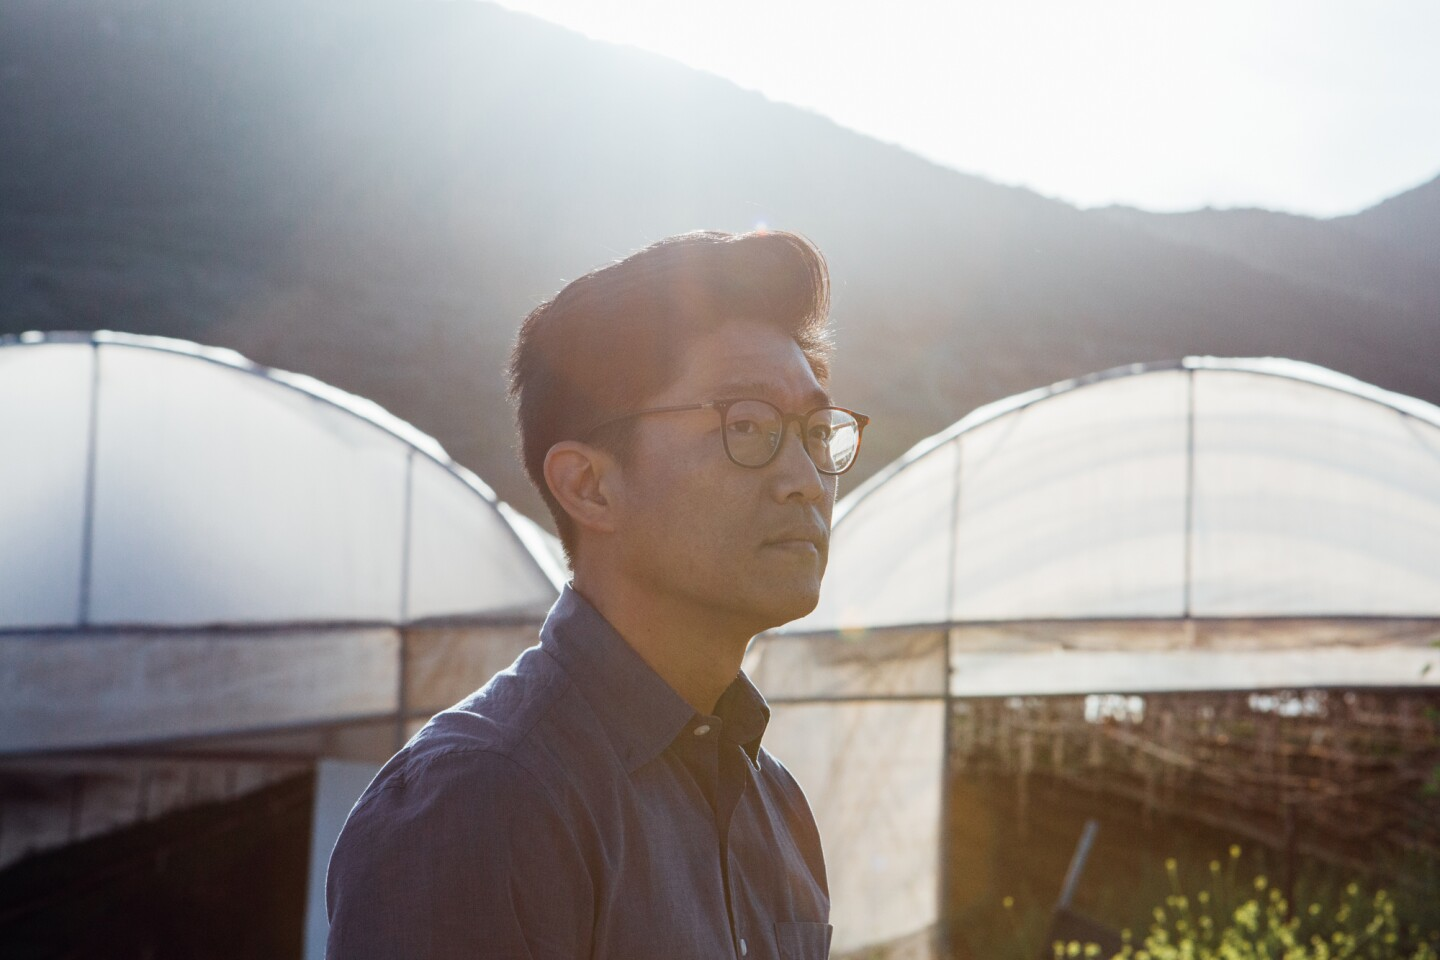 Aaron Choi stands in front of various greenhouses on his farm.